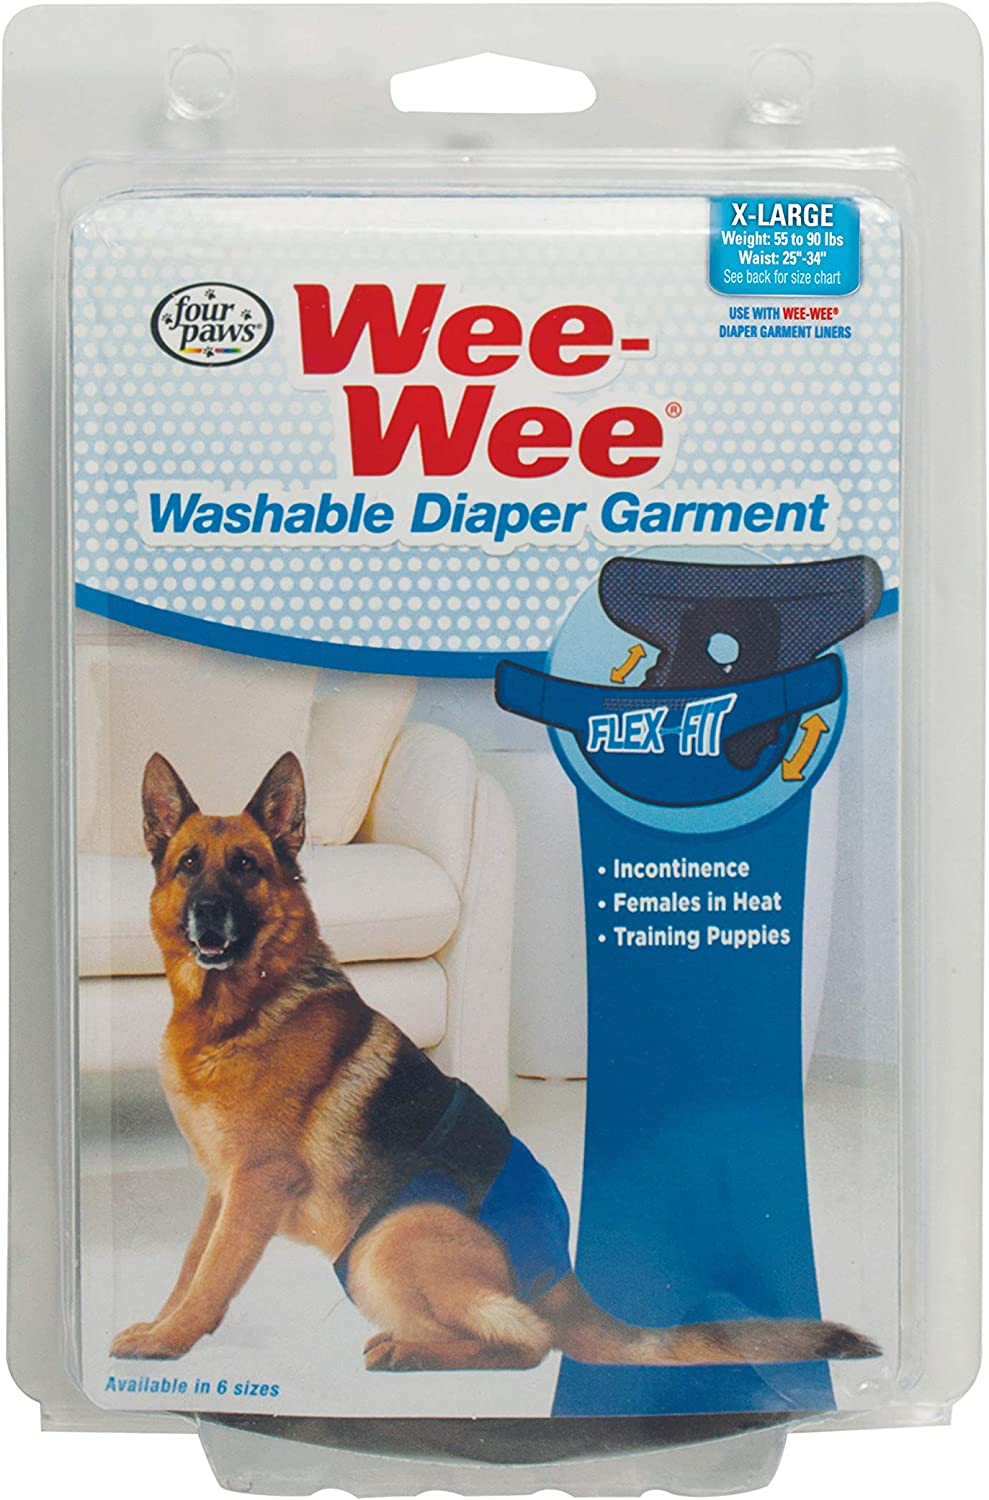 Four Paws Wee-Wee Washable Dog Diaper Garment